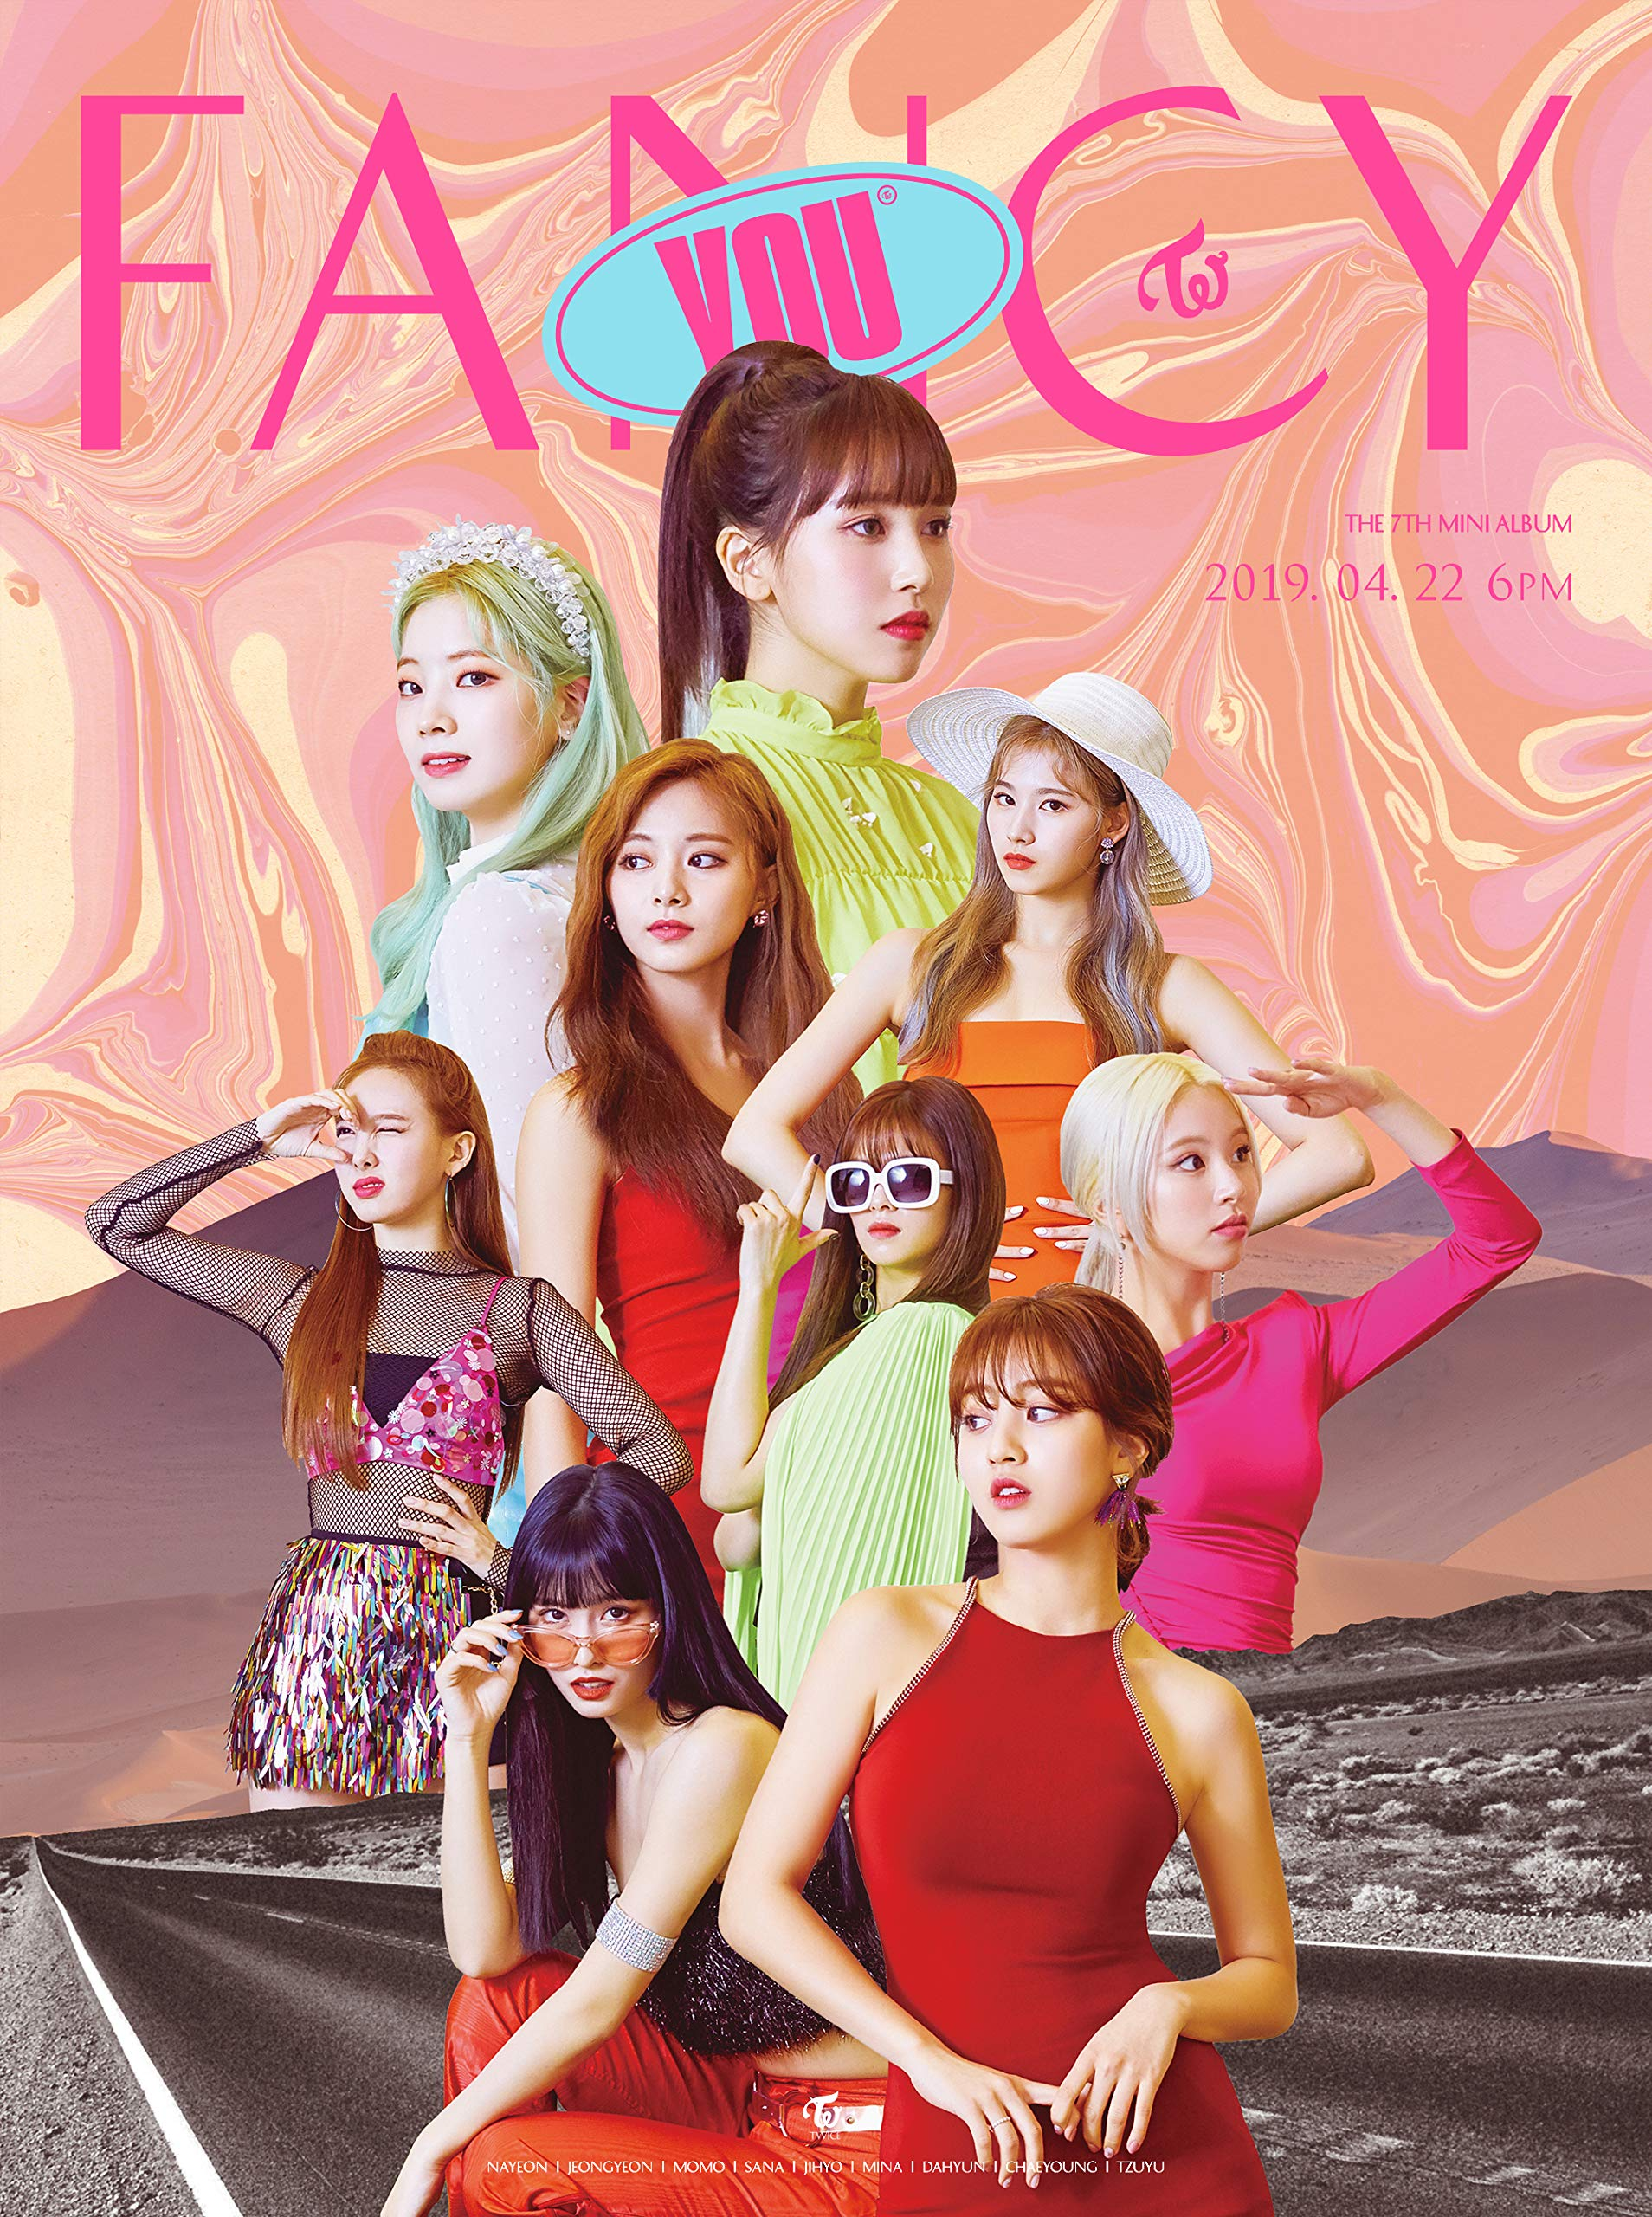 Twice The 7th Mini Album 'Fancy You' [A+B+C ver. Set] - Pack of 3CD, 3Photobook, Photocards, 3Folded Posters with Pre Order Benefit, Extra Decorative Sticker Set, Photocard Set